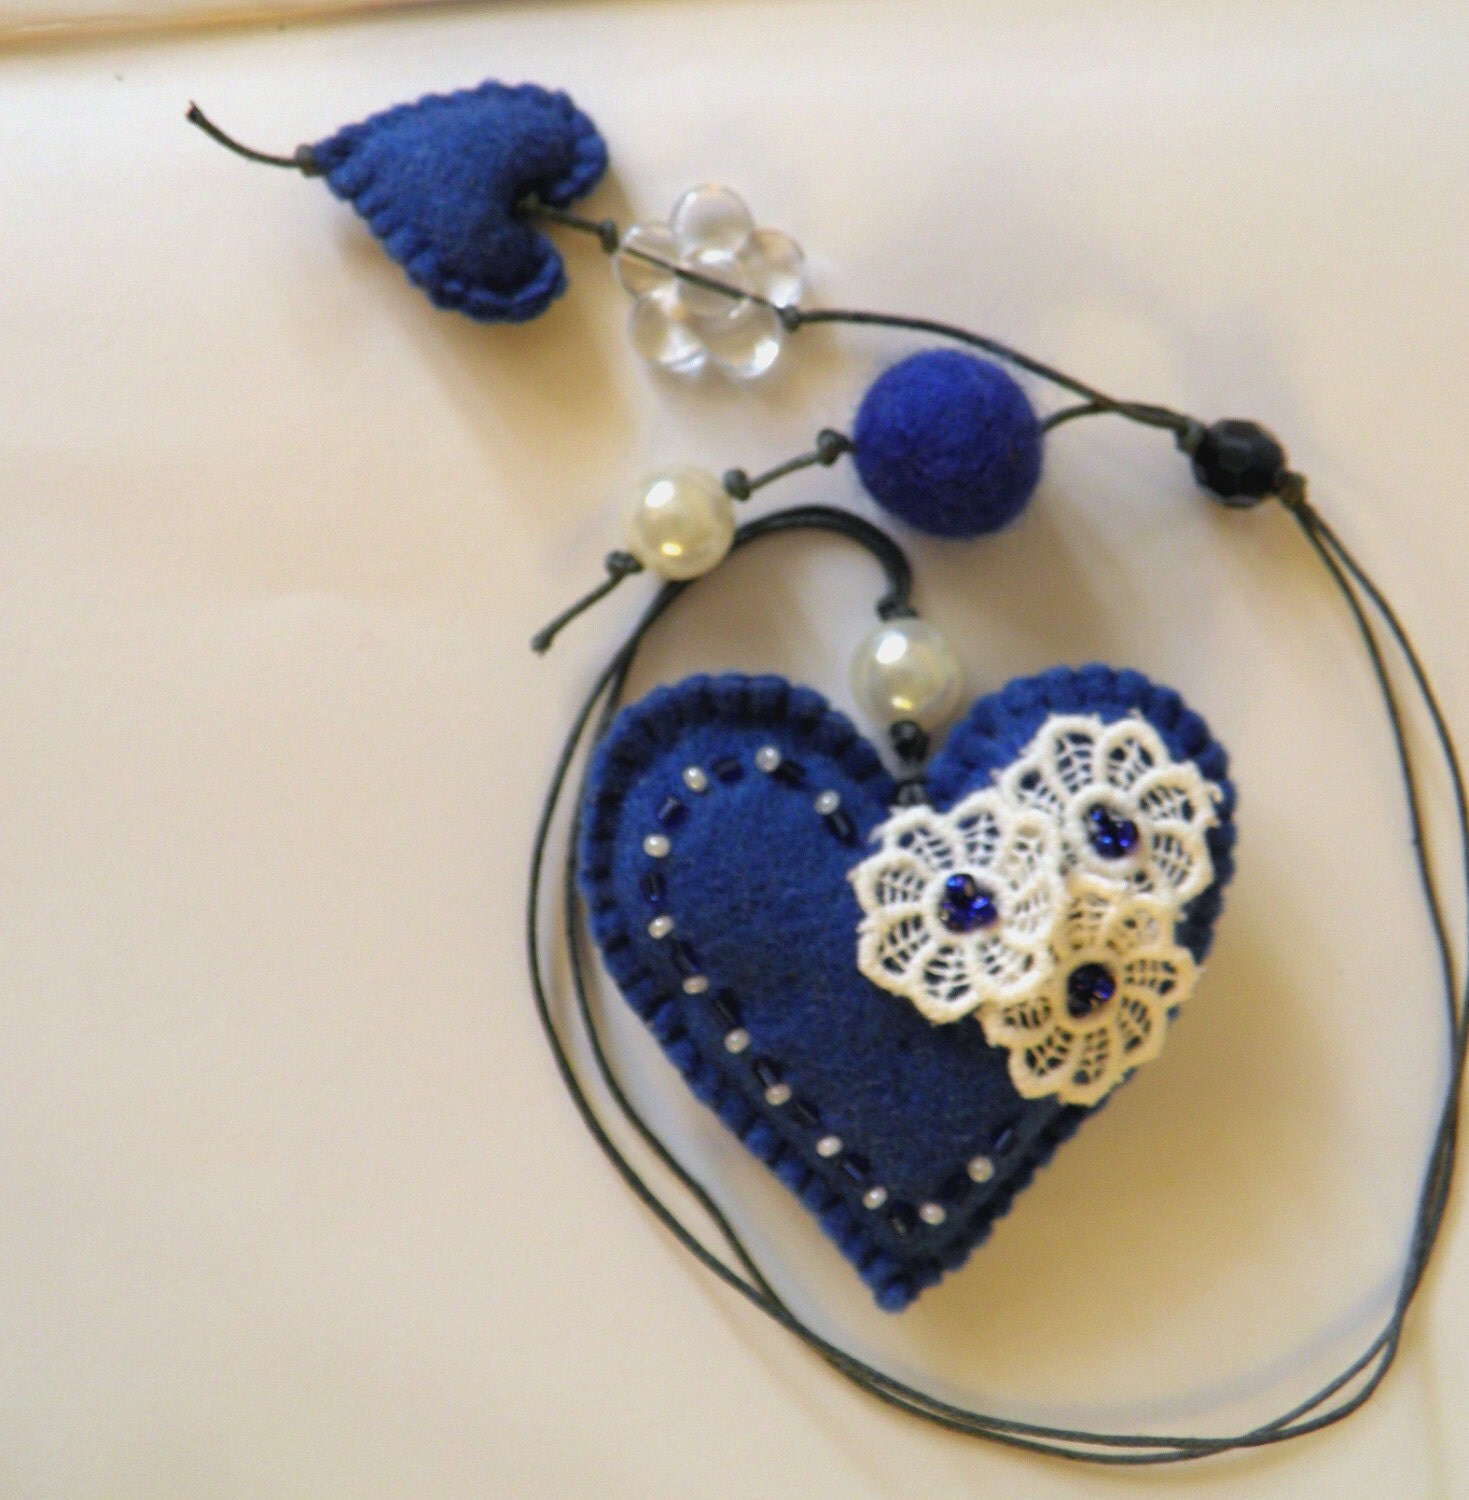 Felt bookmark with a blue heart / felt Heart /Personalized Bookmark /felt toy/ gift for child / Spring /Mother's Day /Ready to Ship